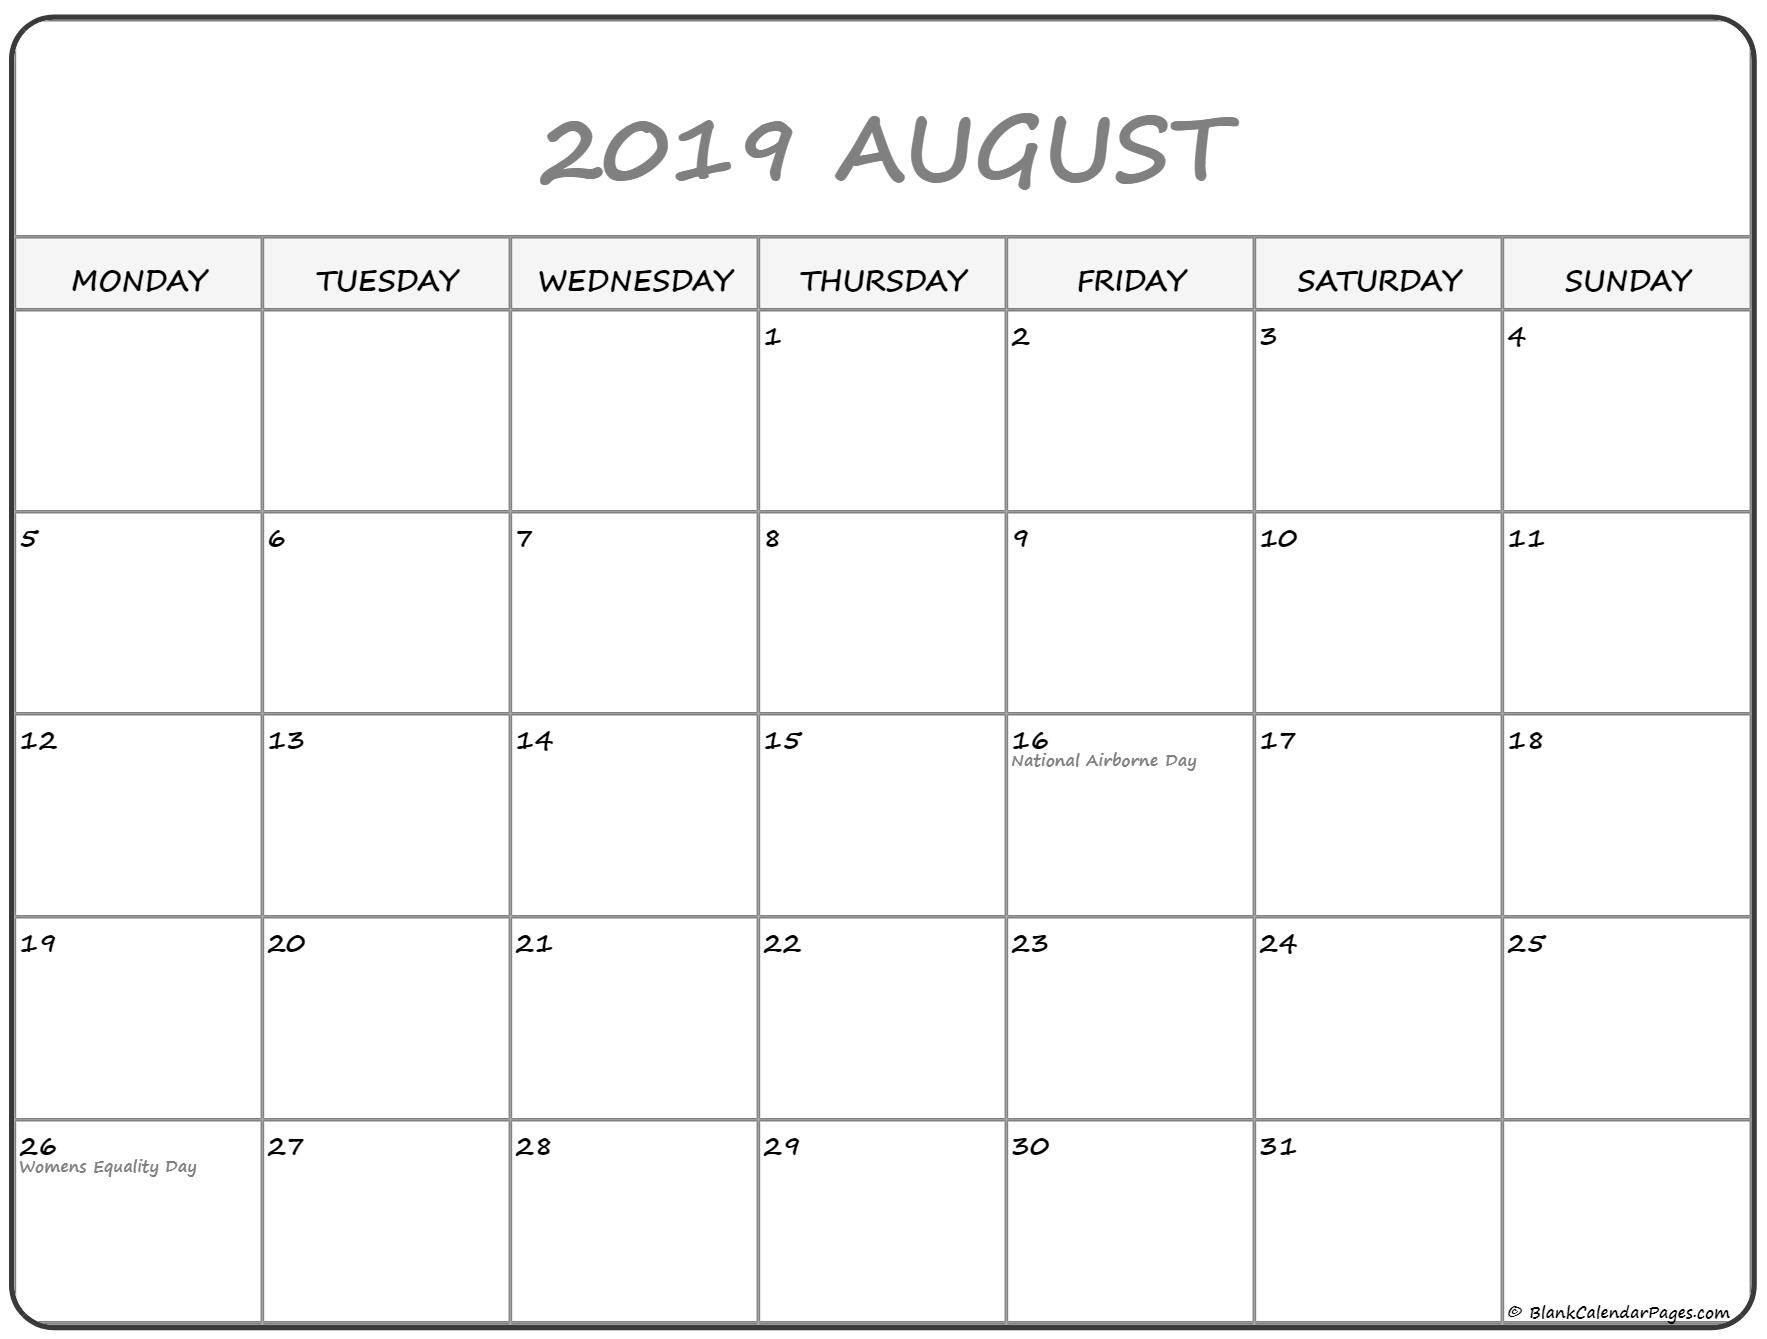 August 2019 Monday Calendar | Monday To Sunday pertaining to Monday Through Sunday Calendar